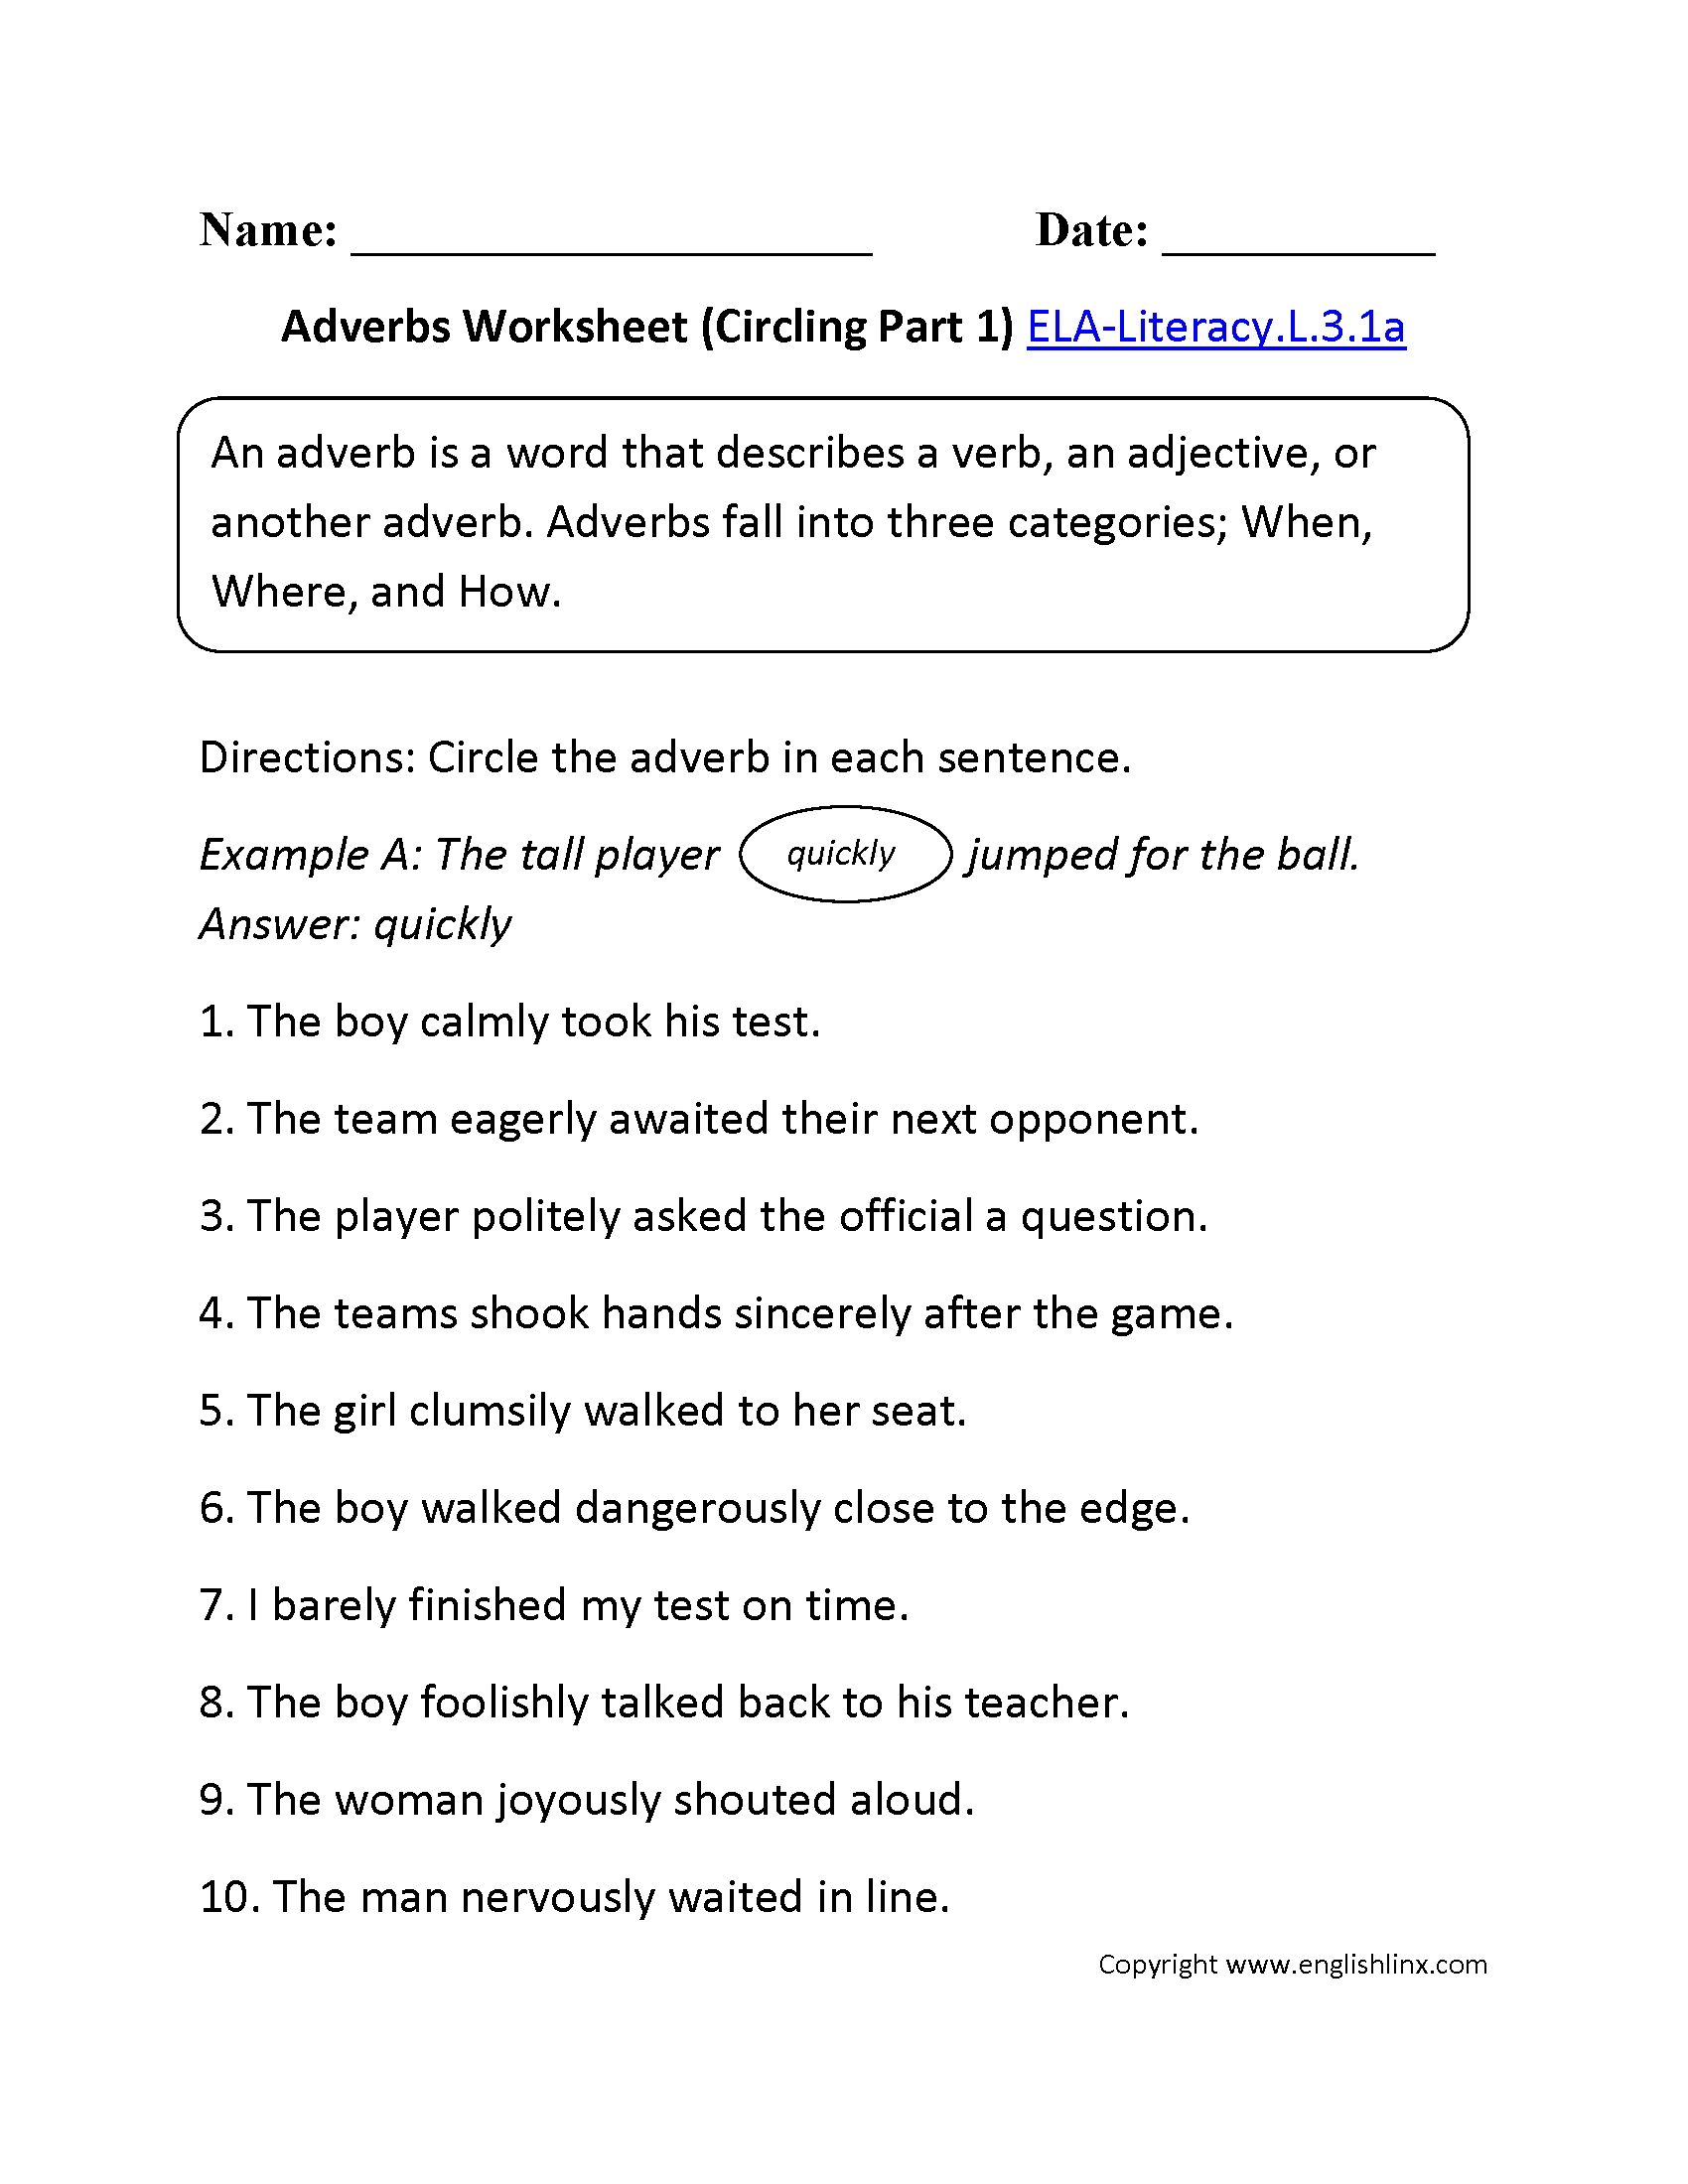 Worksheet Adverb Worksheets Grade 3 adverbs worksheets for grade 3 scalien worksheet scalien